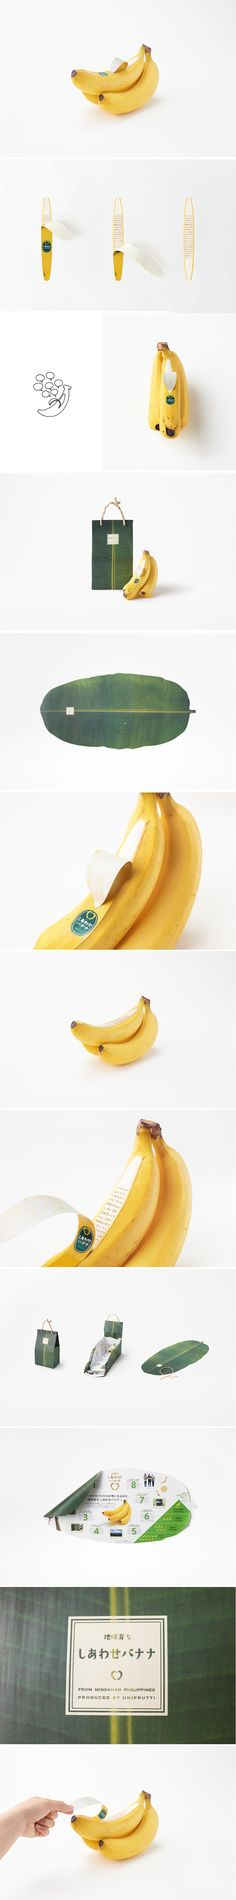 Shiawase Banana Packaging Design